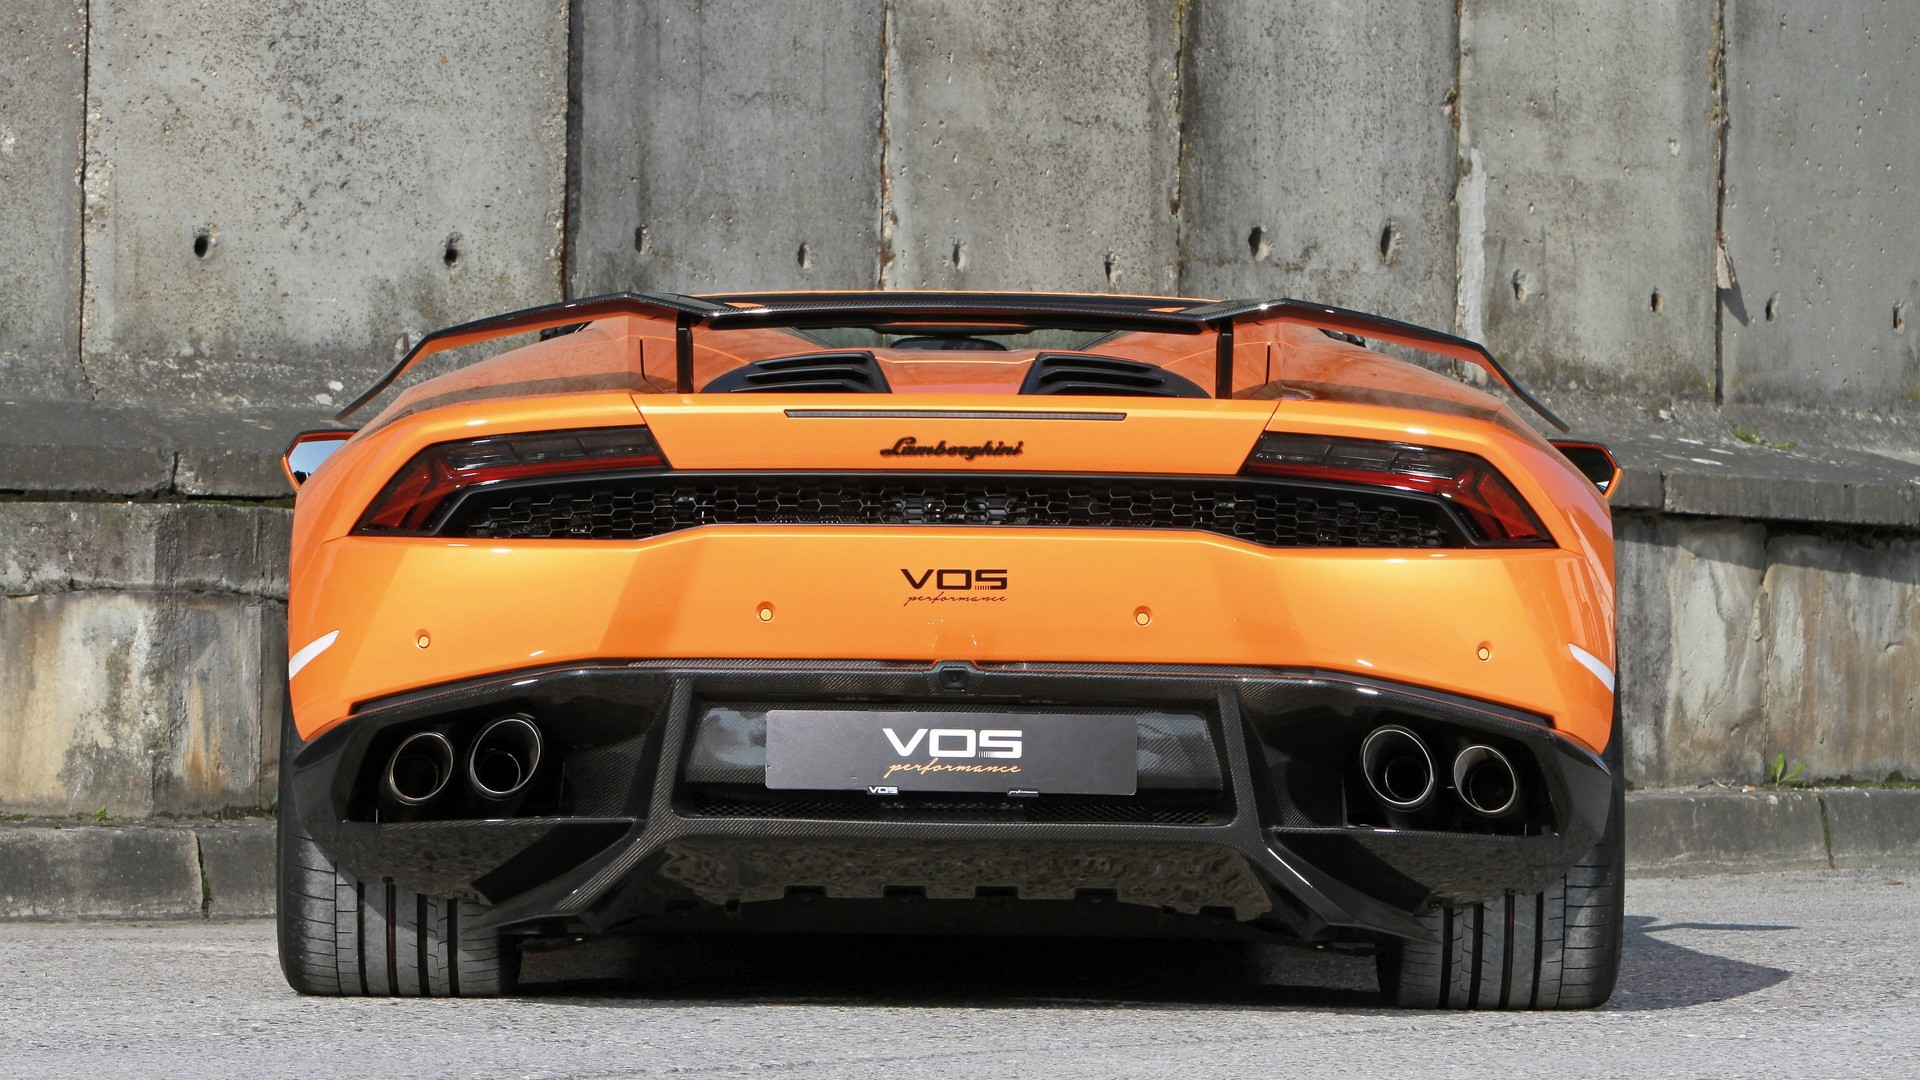 Lamborghini Huracan Spyder by Vision of Speed (6)